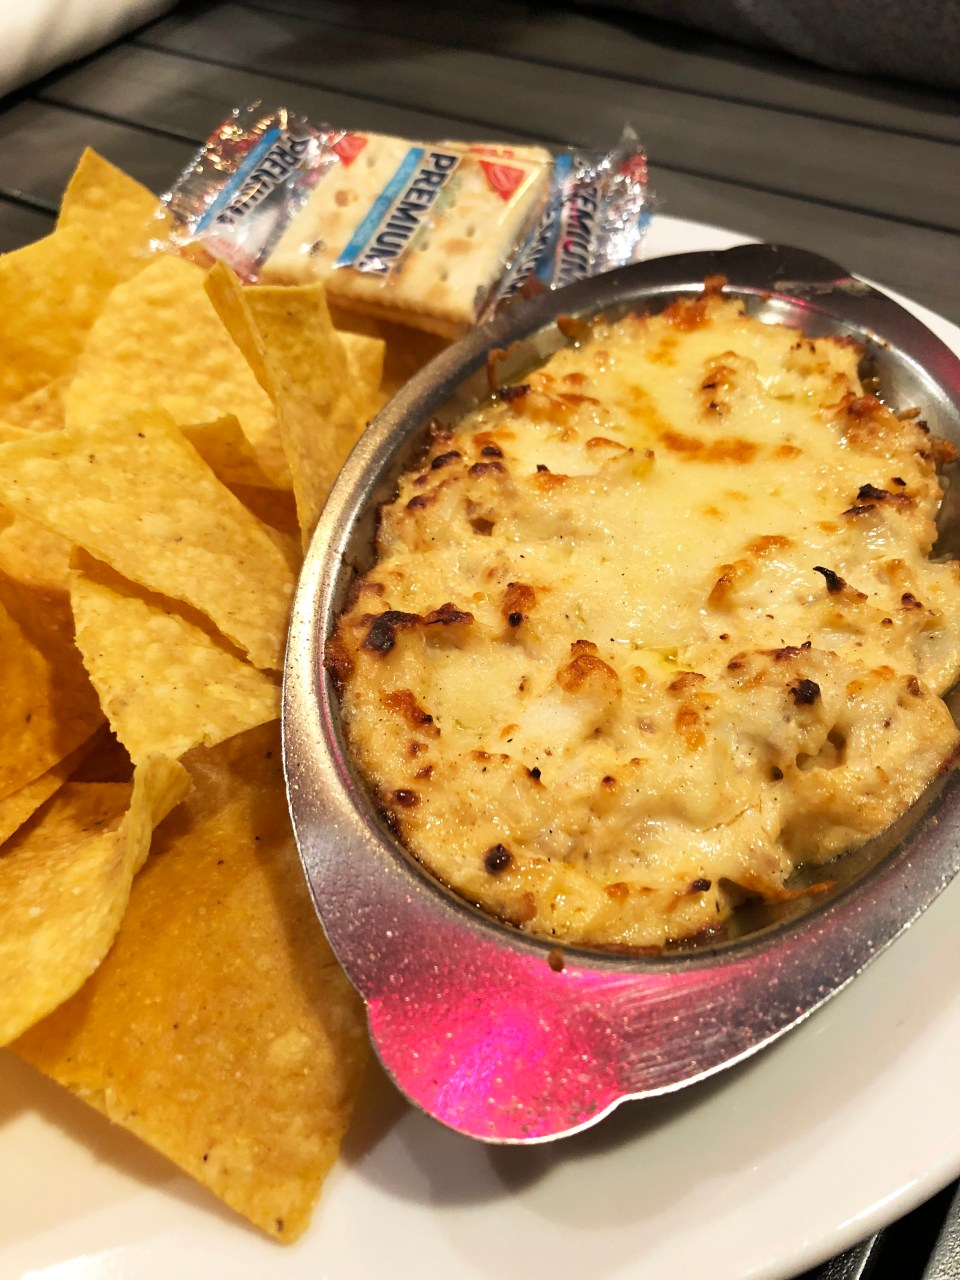 Hank's Oyster Bar - Eastern Shore Crab Dip